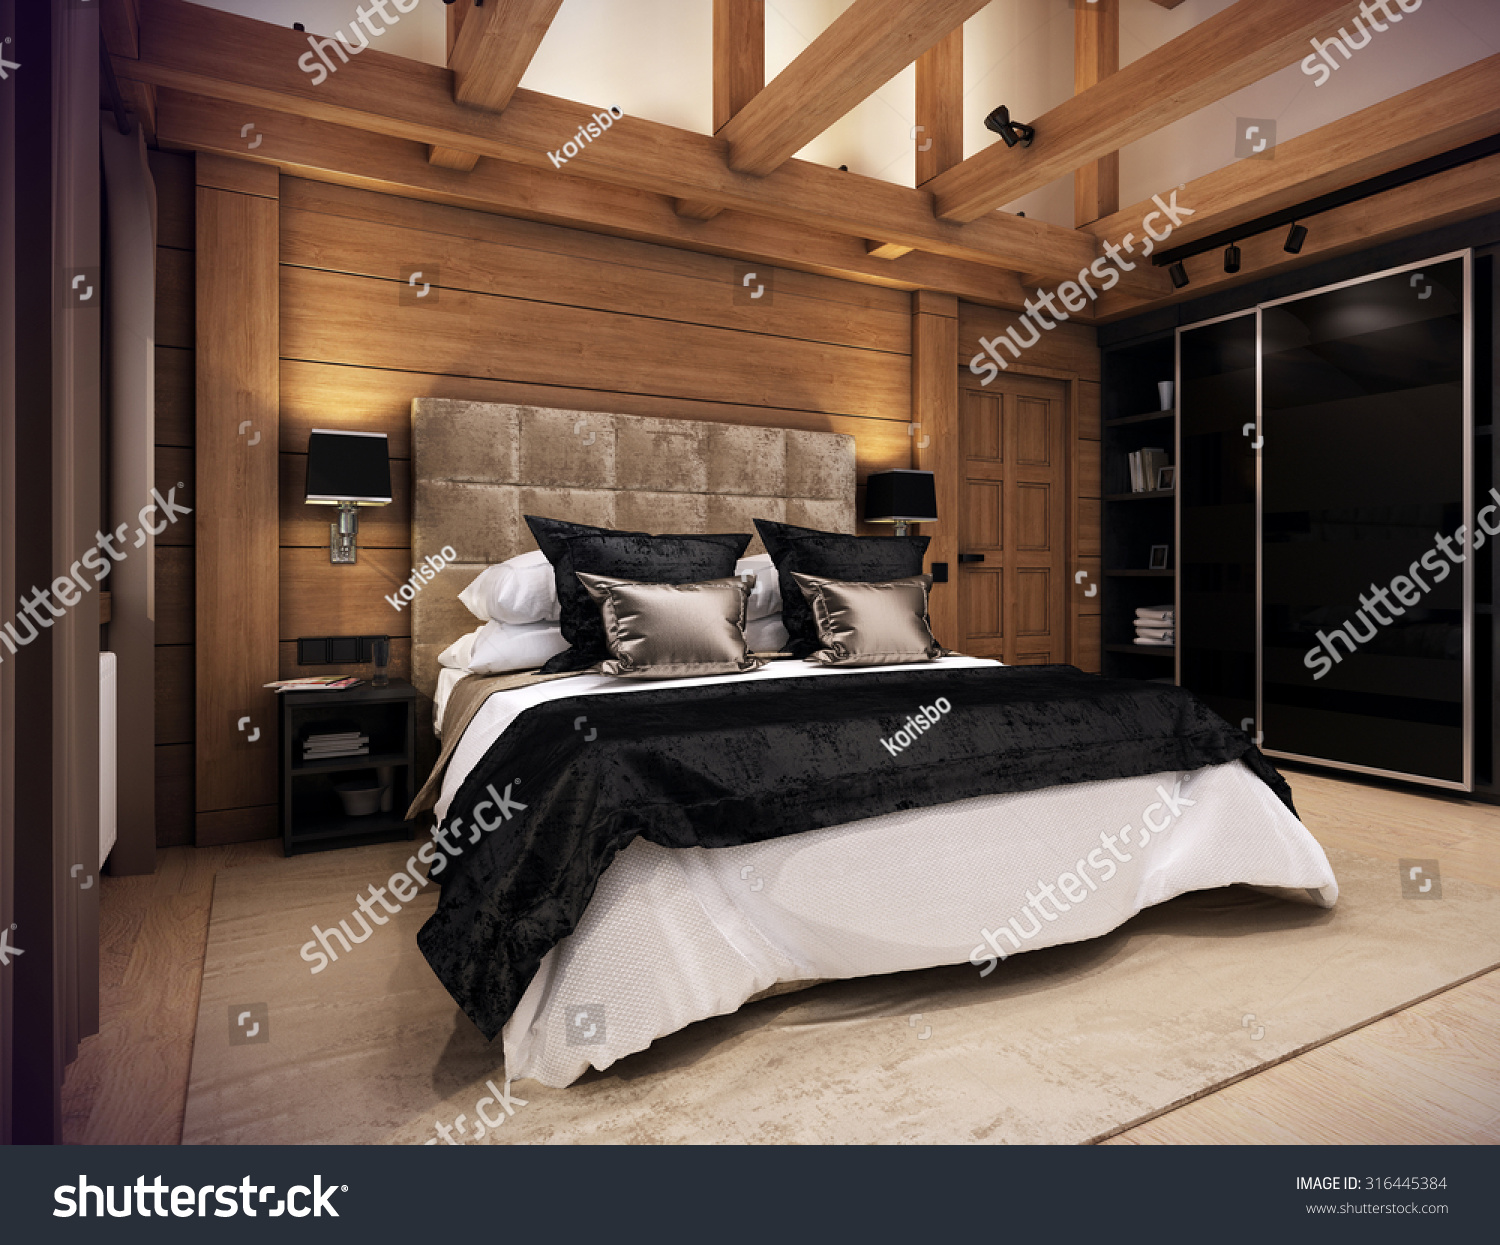 cozy bedroom. The Cozy Bedroom Is In Attic Of A Chalet. Huge Bed With Numerous Pillows